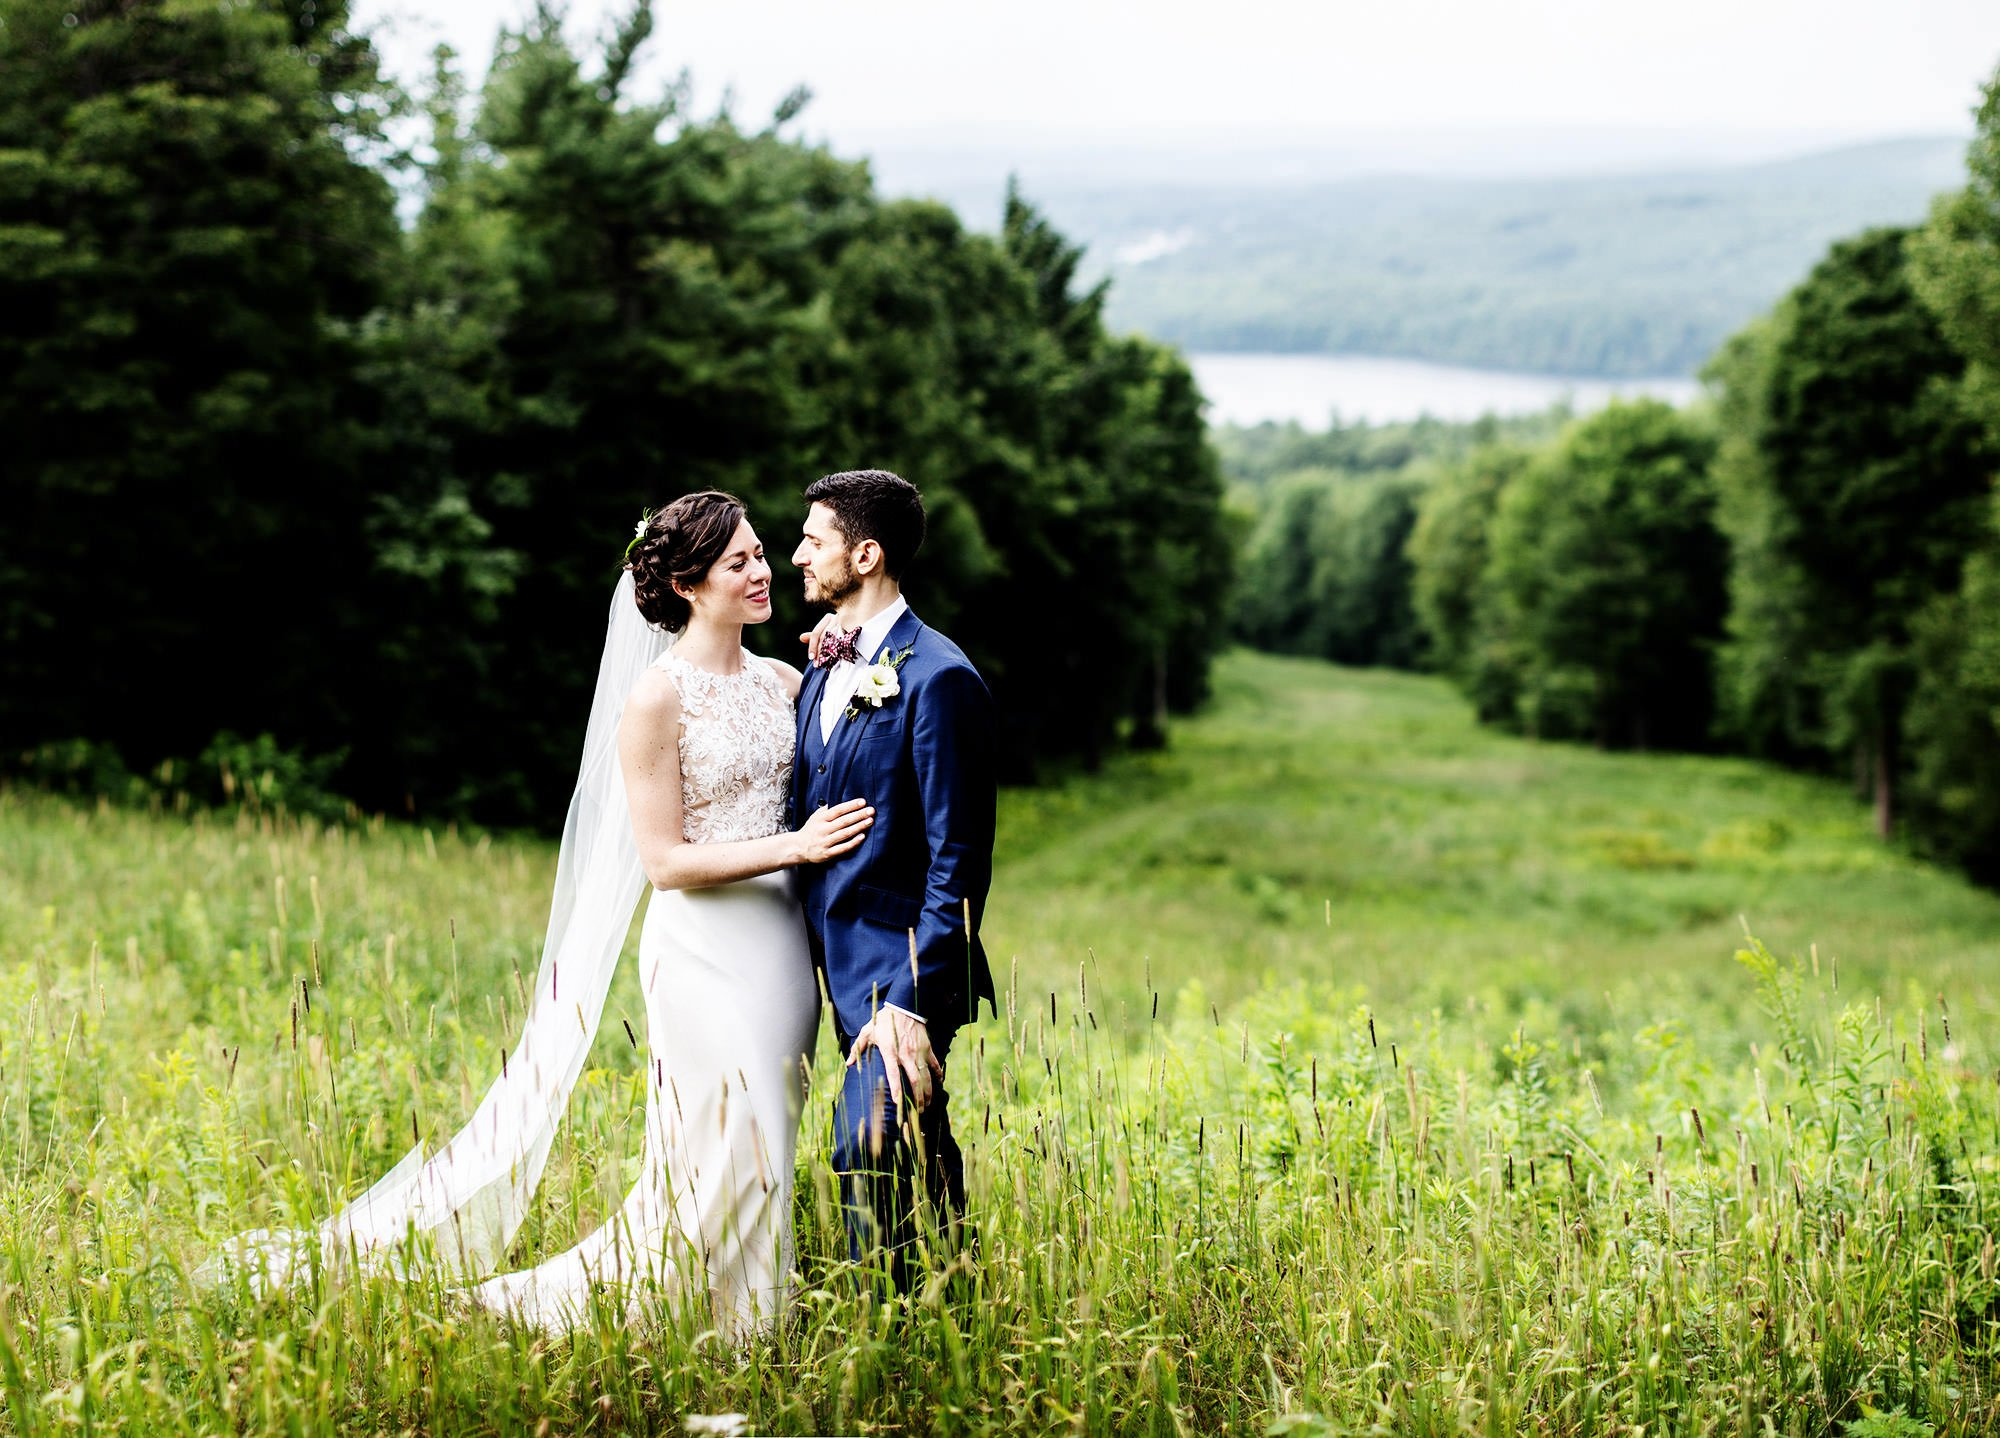 The Bride and Groom pose for a portrait during their Wachusett Mountain Wedding.